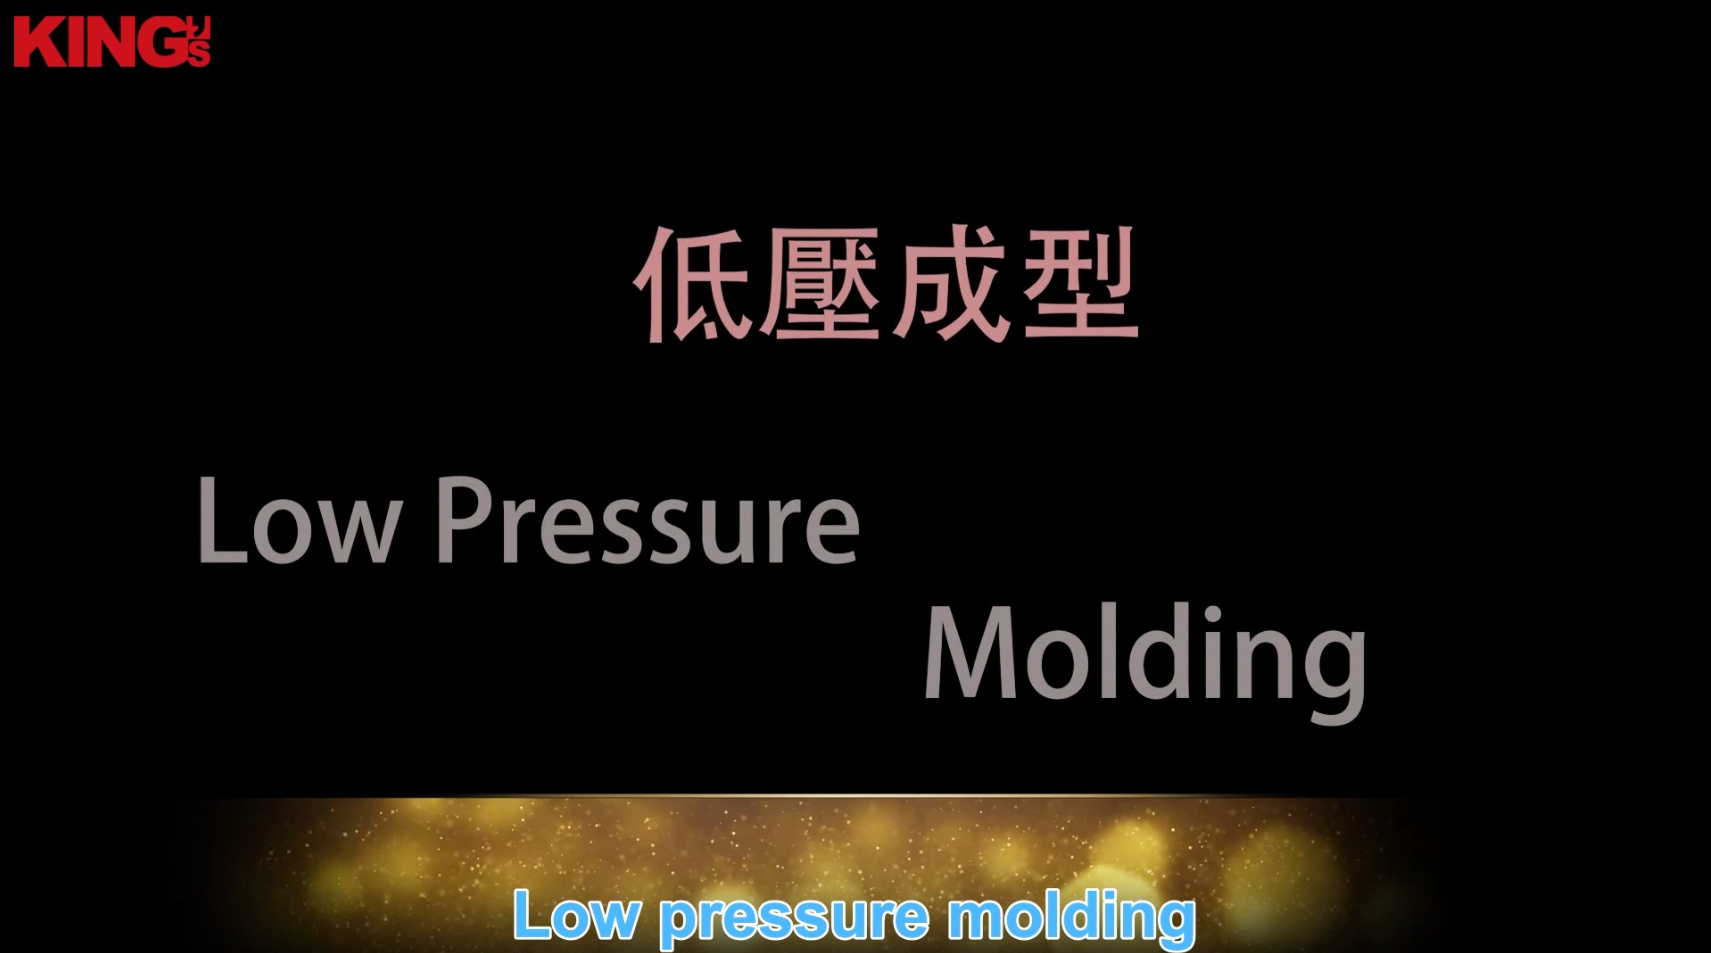 Let's LEGO Low Pressure Molding for Micro switch